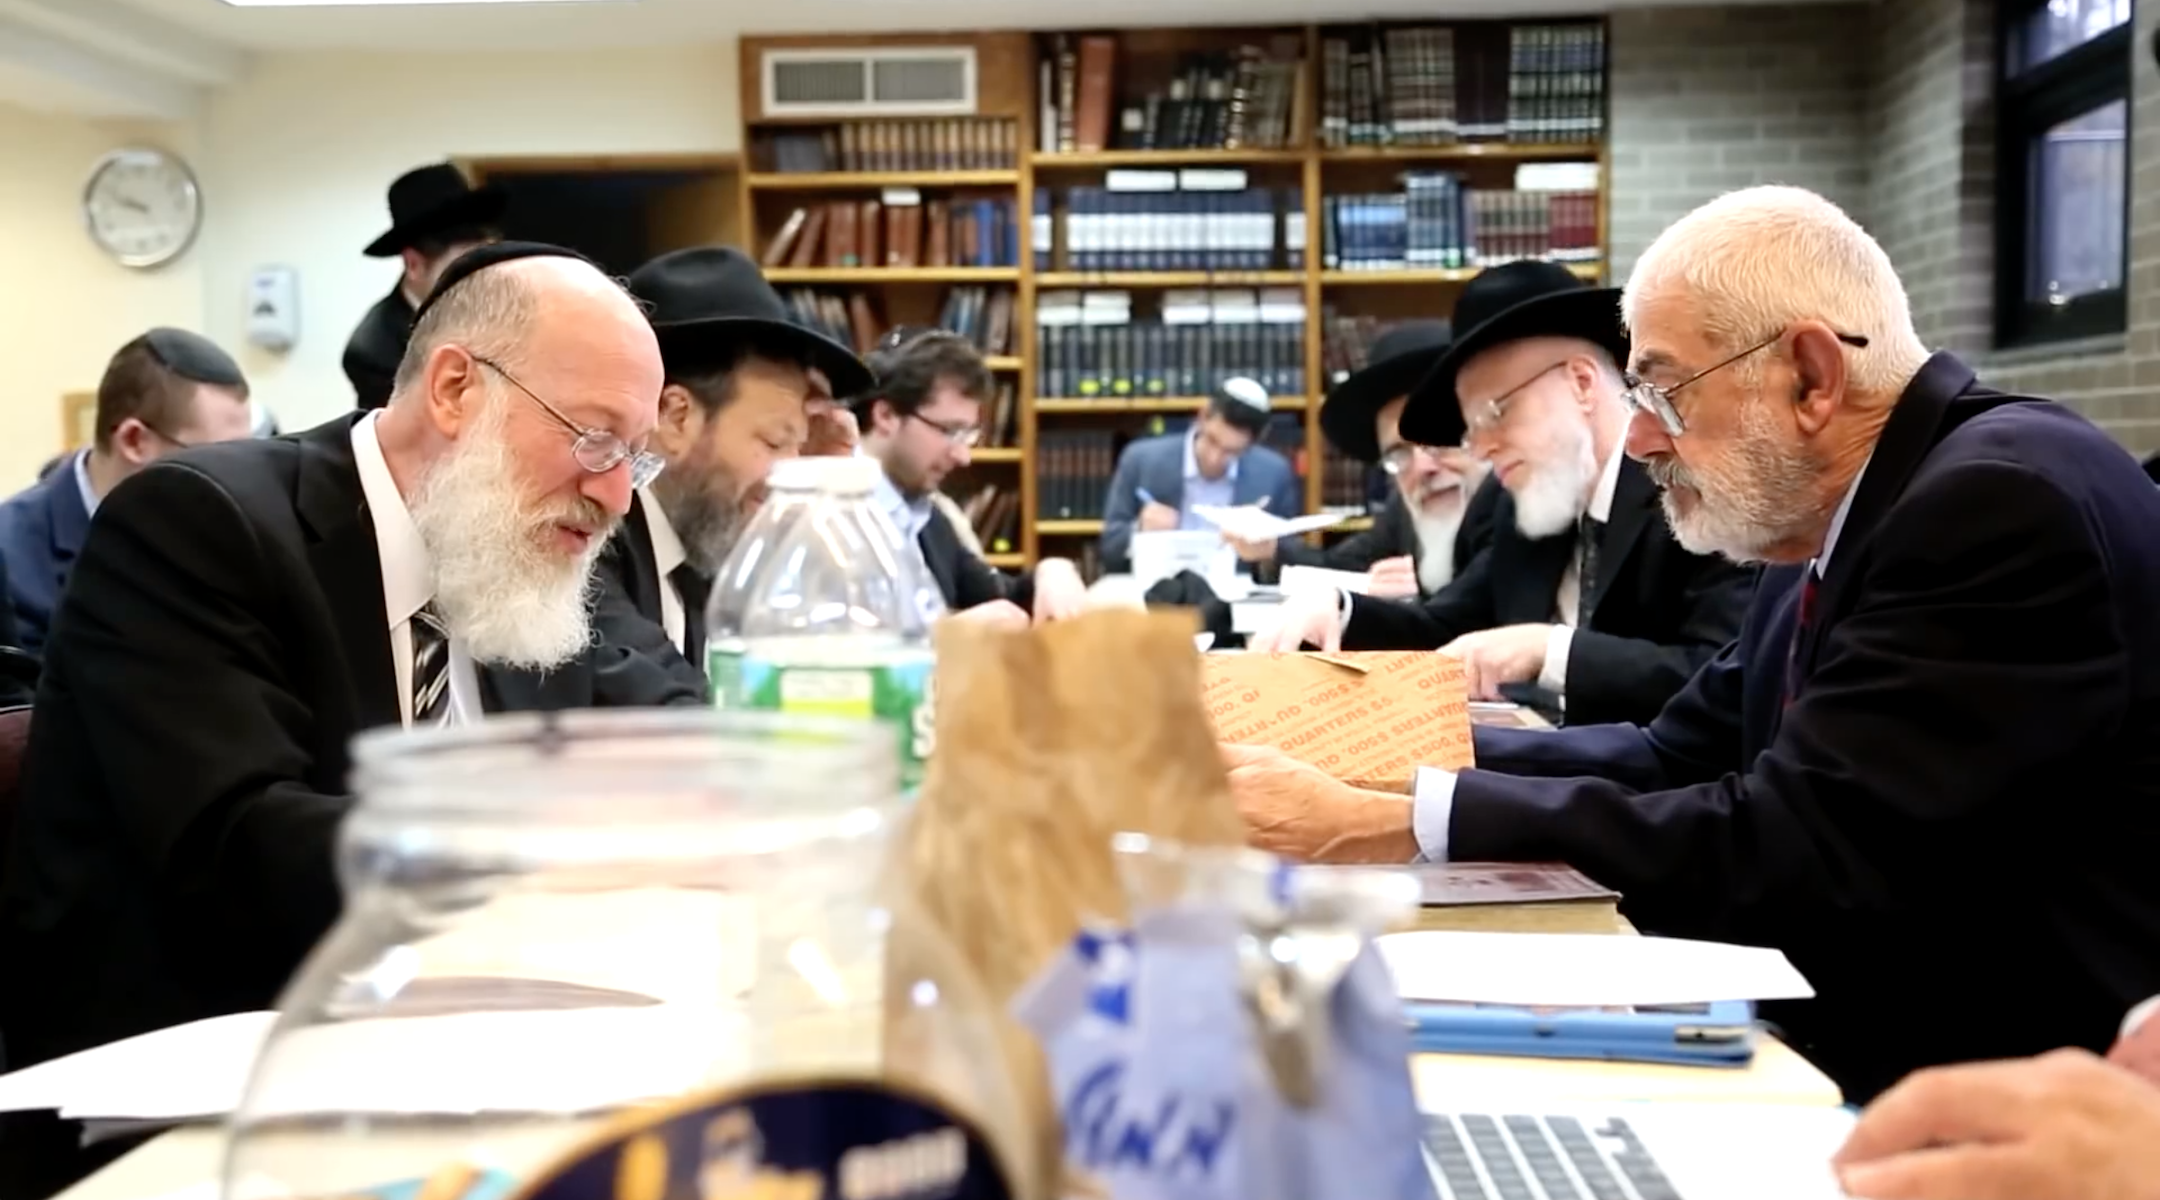 Rabbi Mordechai Willig, left, executes the 2015 sale of hametz to John Brown, right. Brown died this year after decades of buying hametz from thousands of American Jews each year before Passover. (Josh Weinberg/screen shot from YouTube)